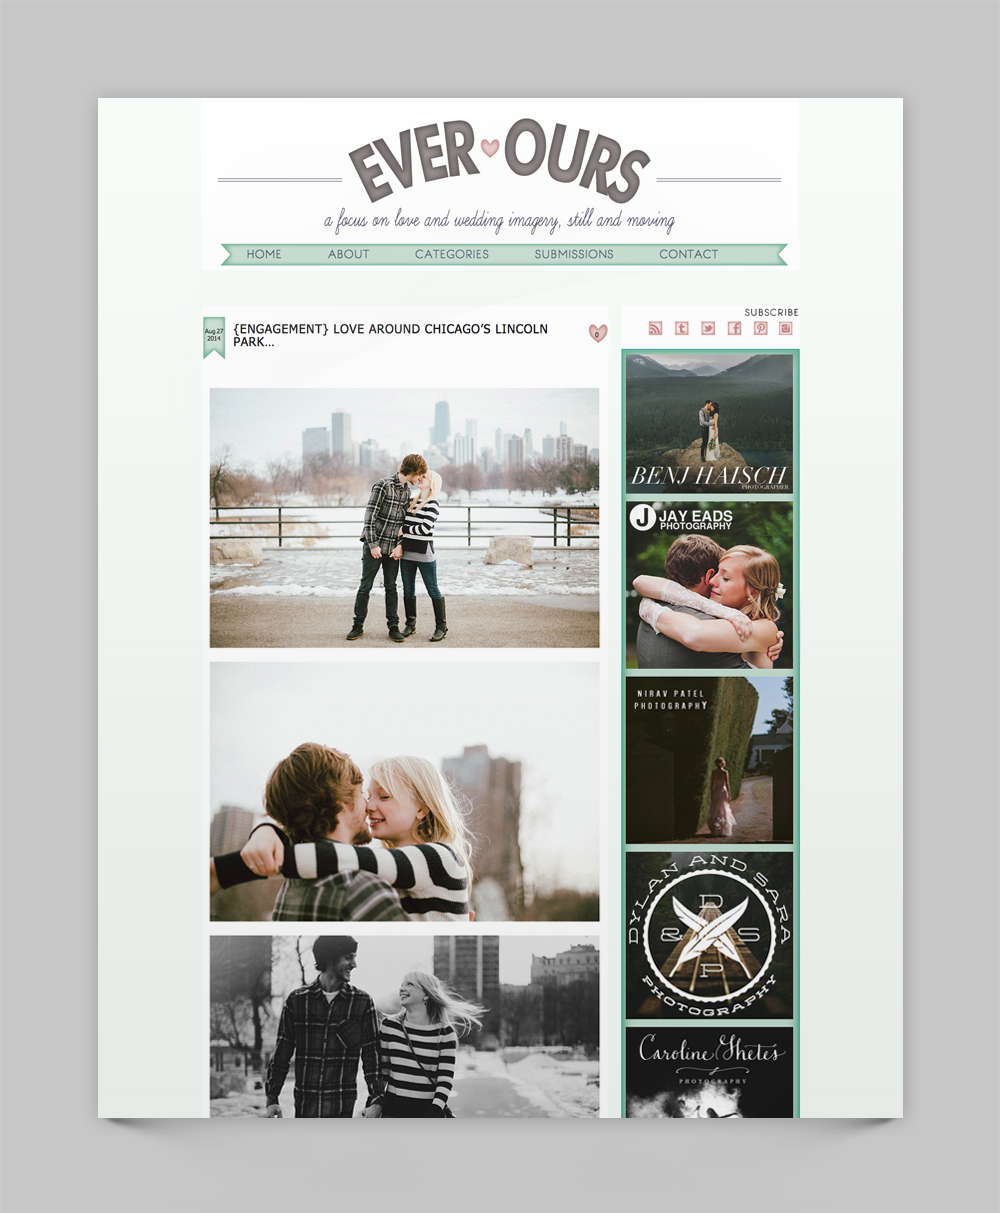 ever-ours-feature-8-27-14